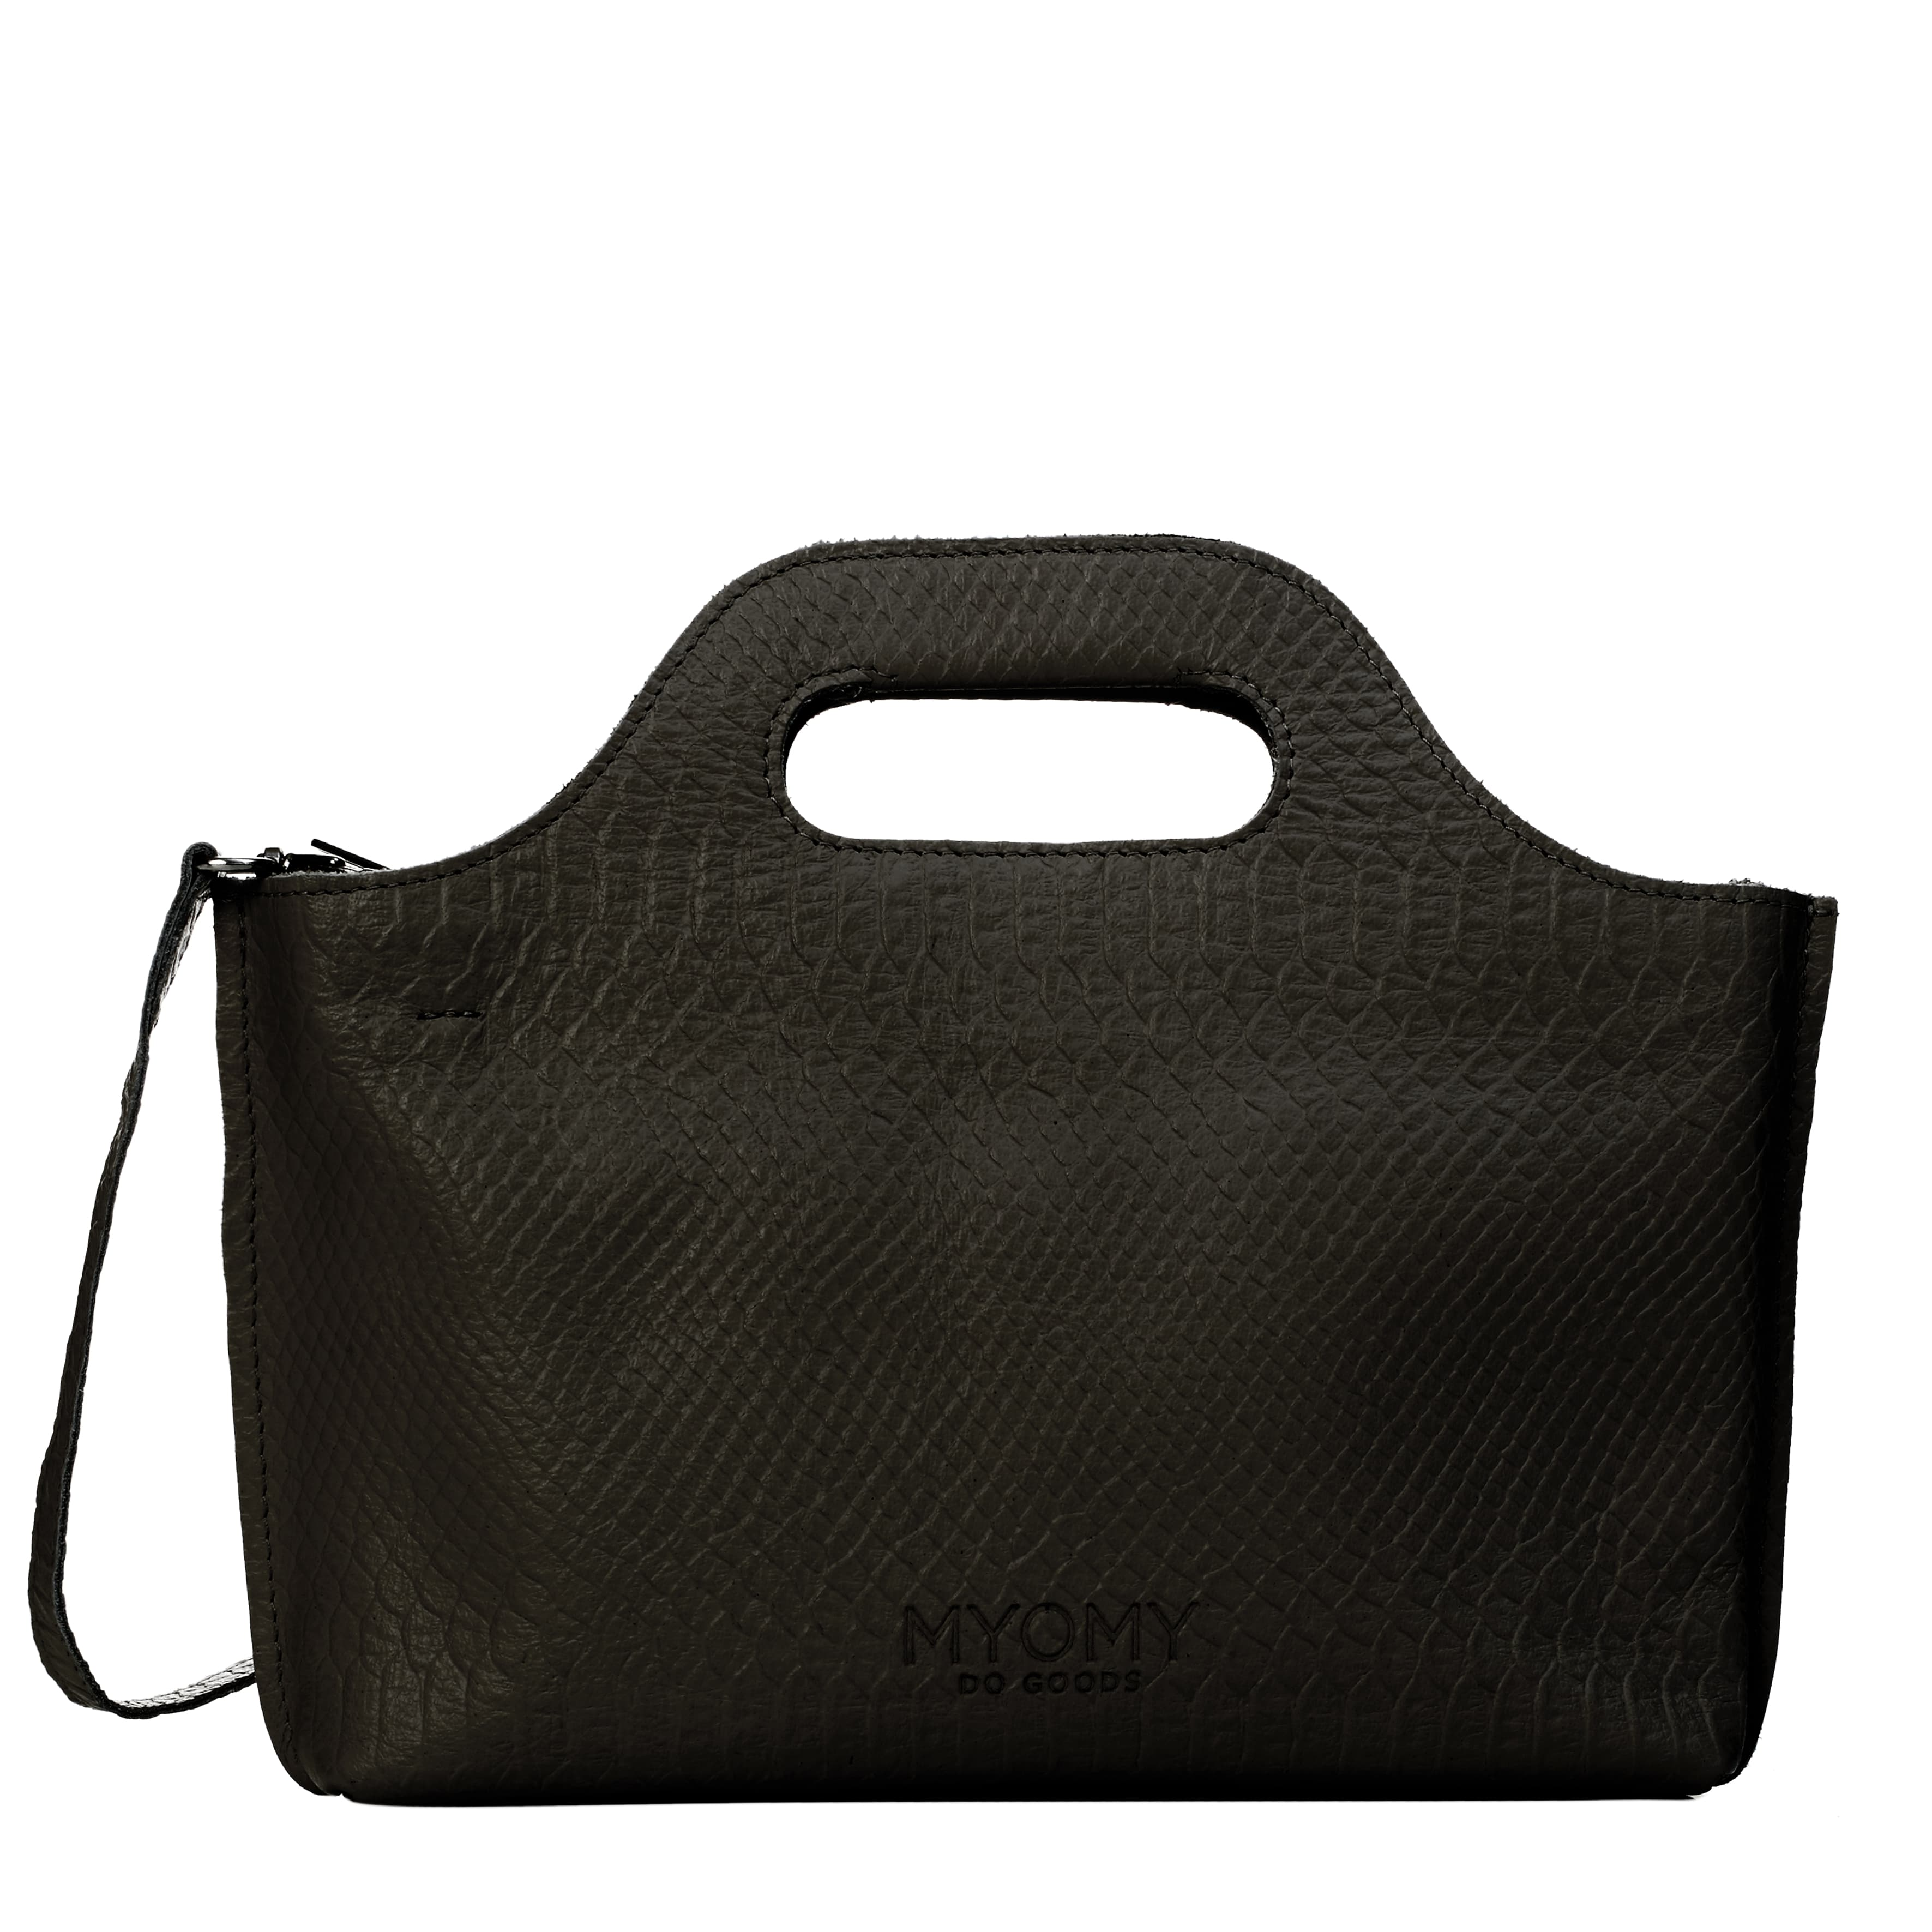 MY CARRY BAG Mini – anaconda black